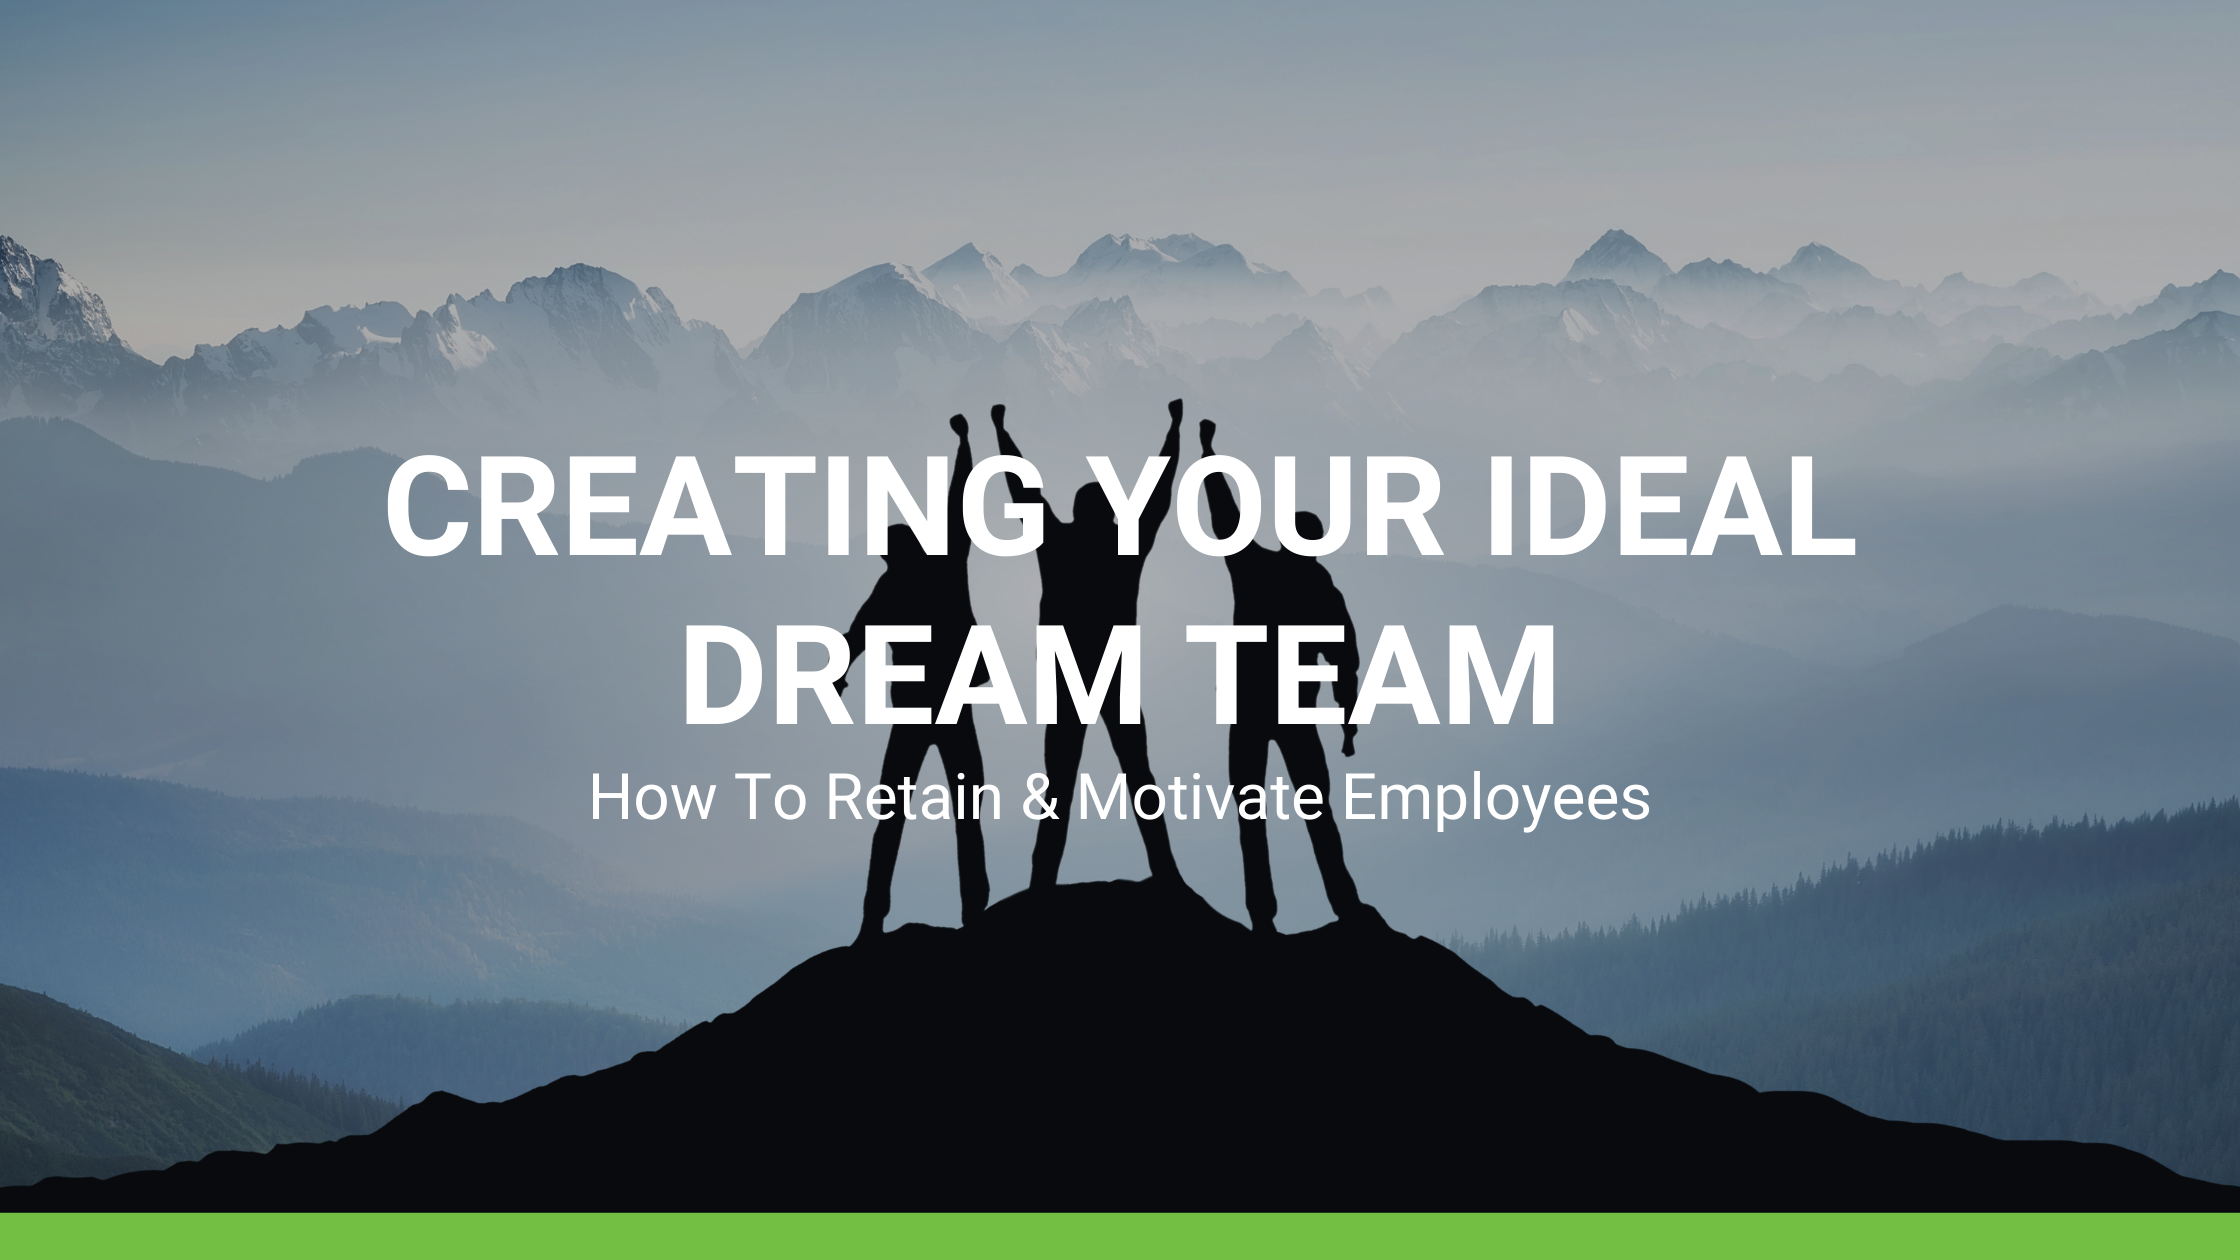 Creating Your Ideal Dream Team